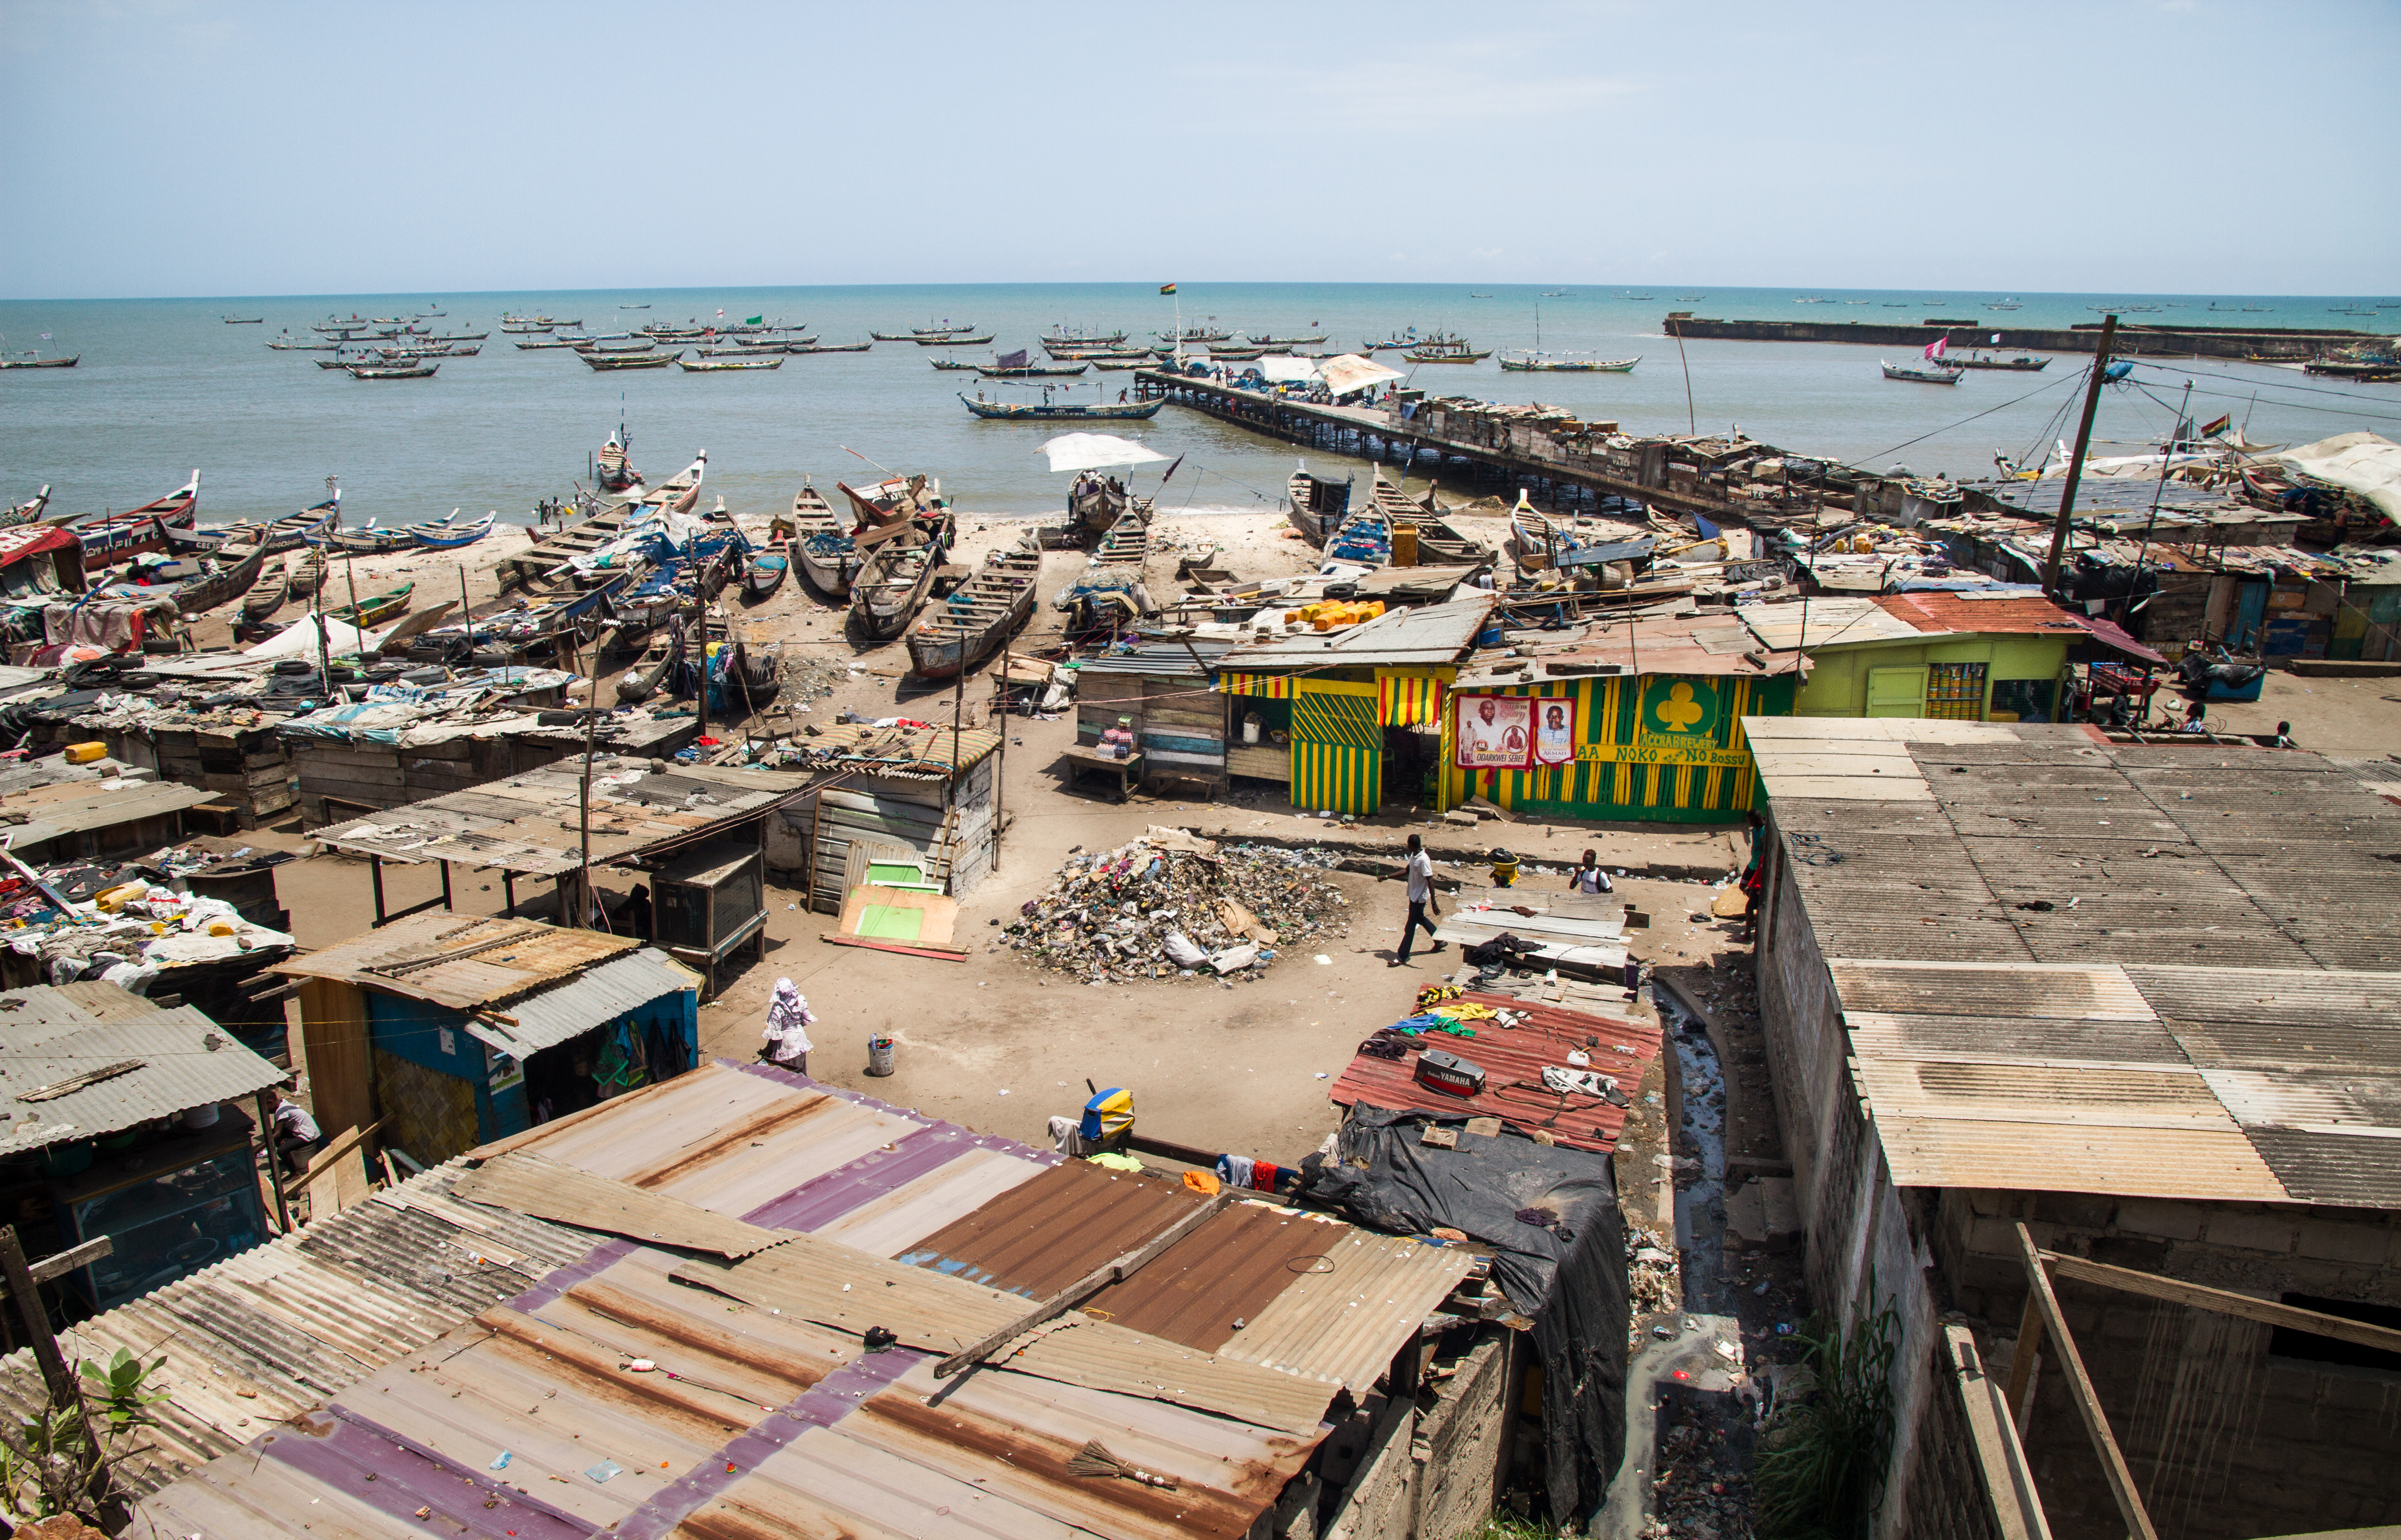 Old Accra, also known as Ga-Mashie, in Ghana's capital.